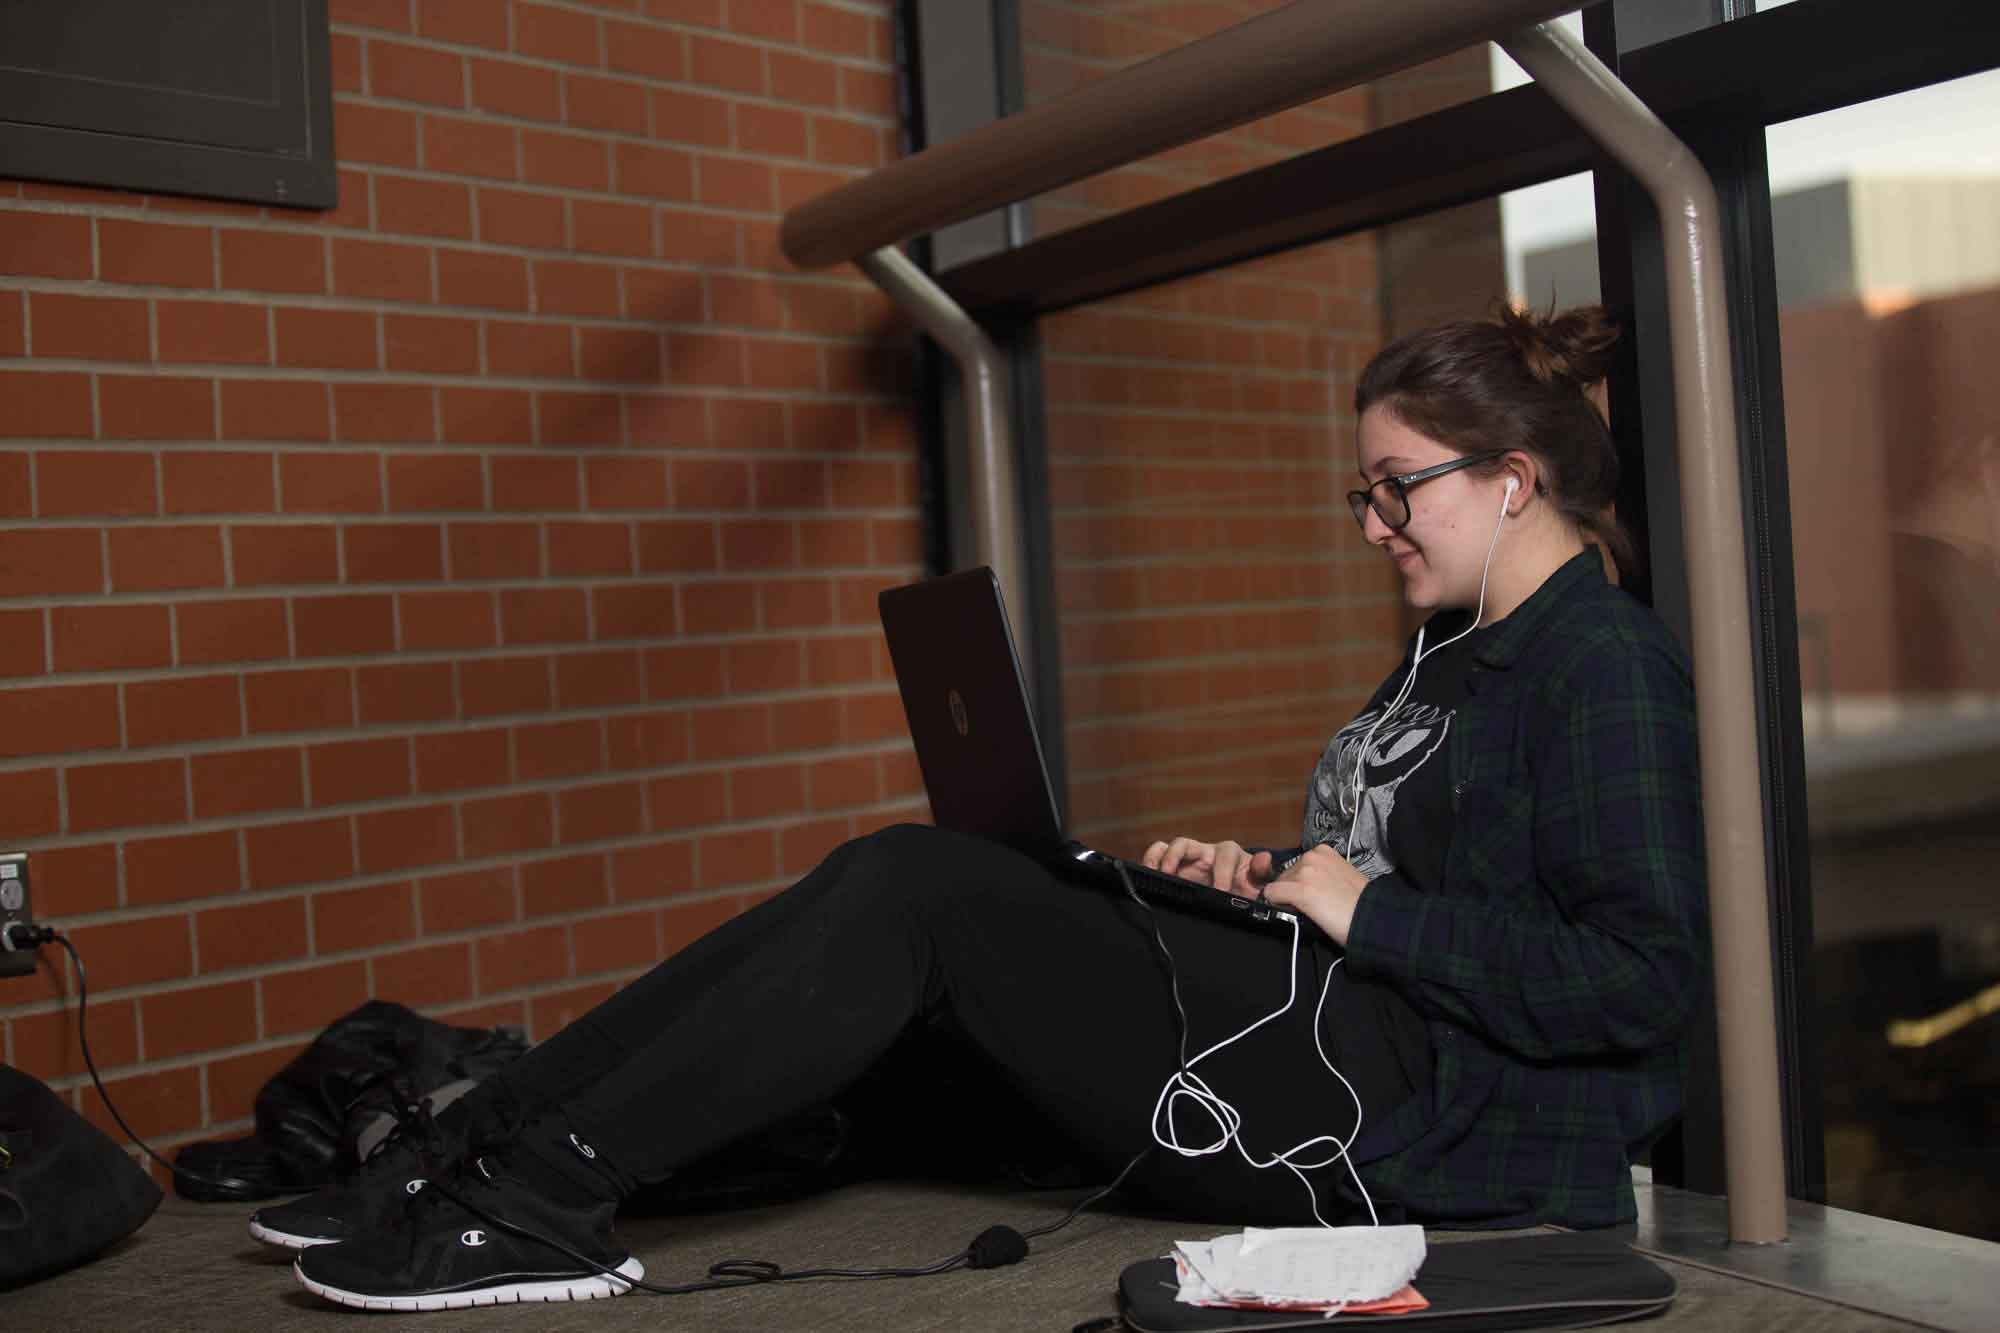 Student sitting down and typing on her laptop